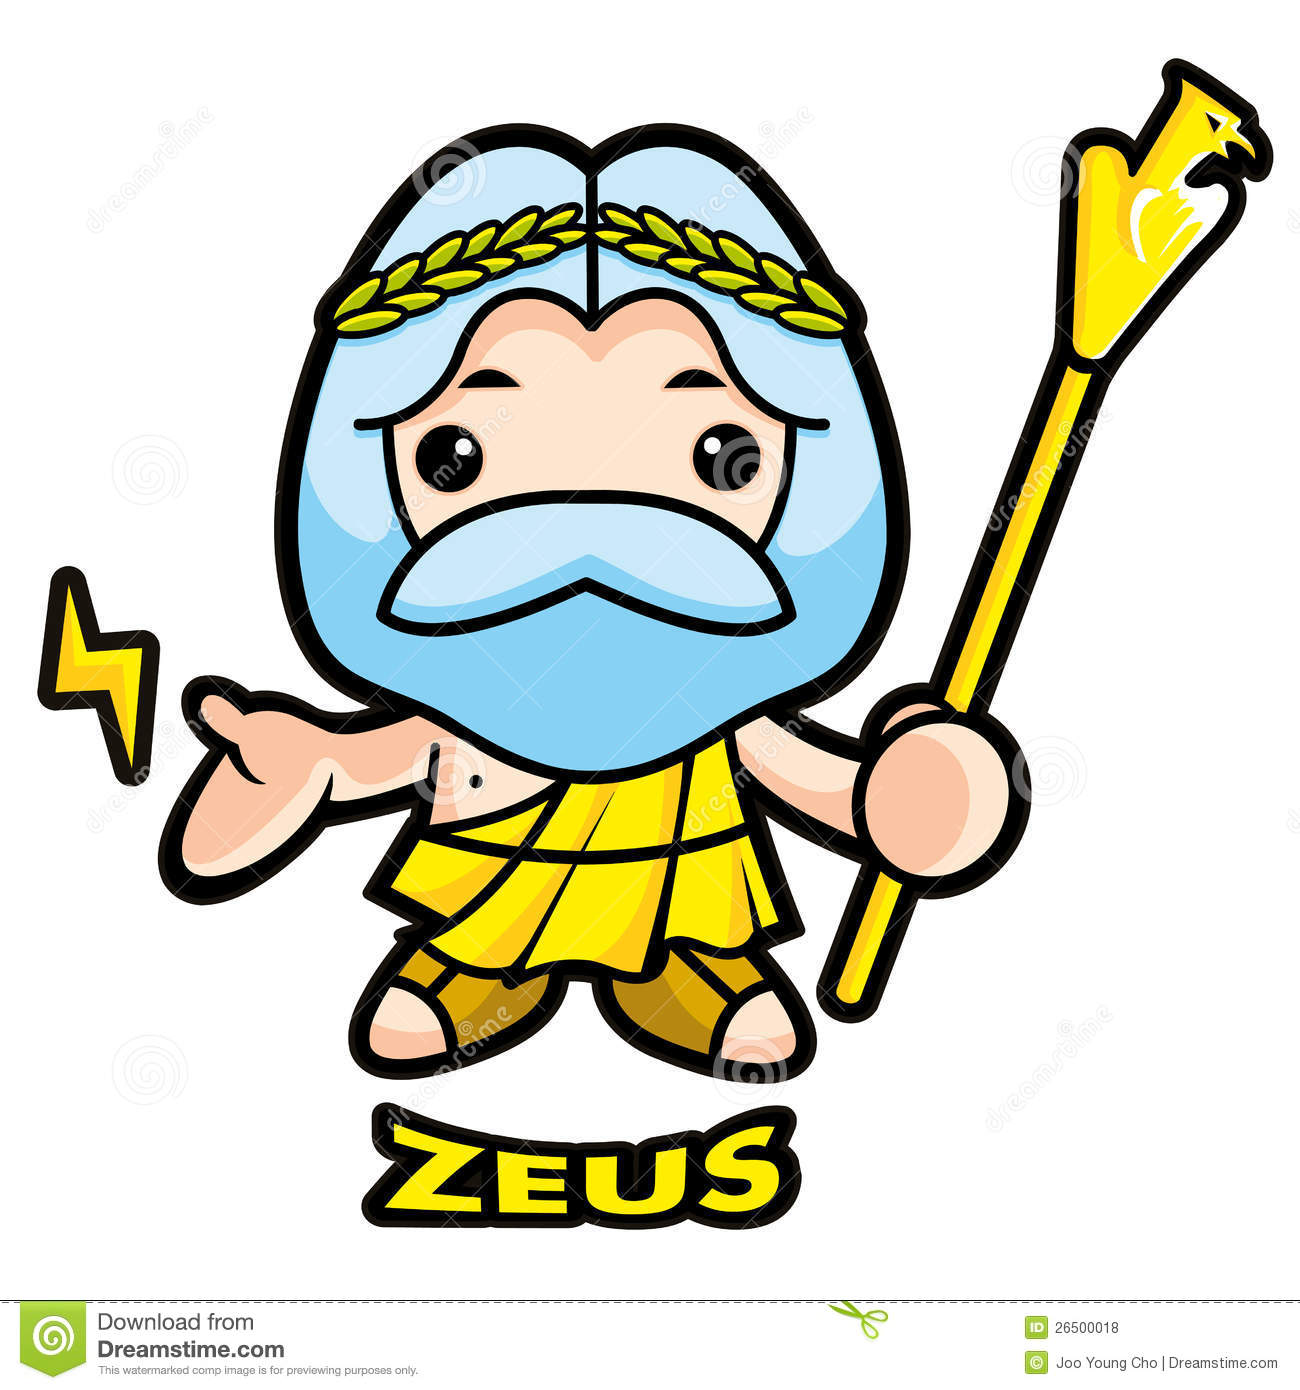 Clip Art Zeus Clipart zeus clipart kid of sky and thunder god royalty free stock photos image